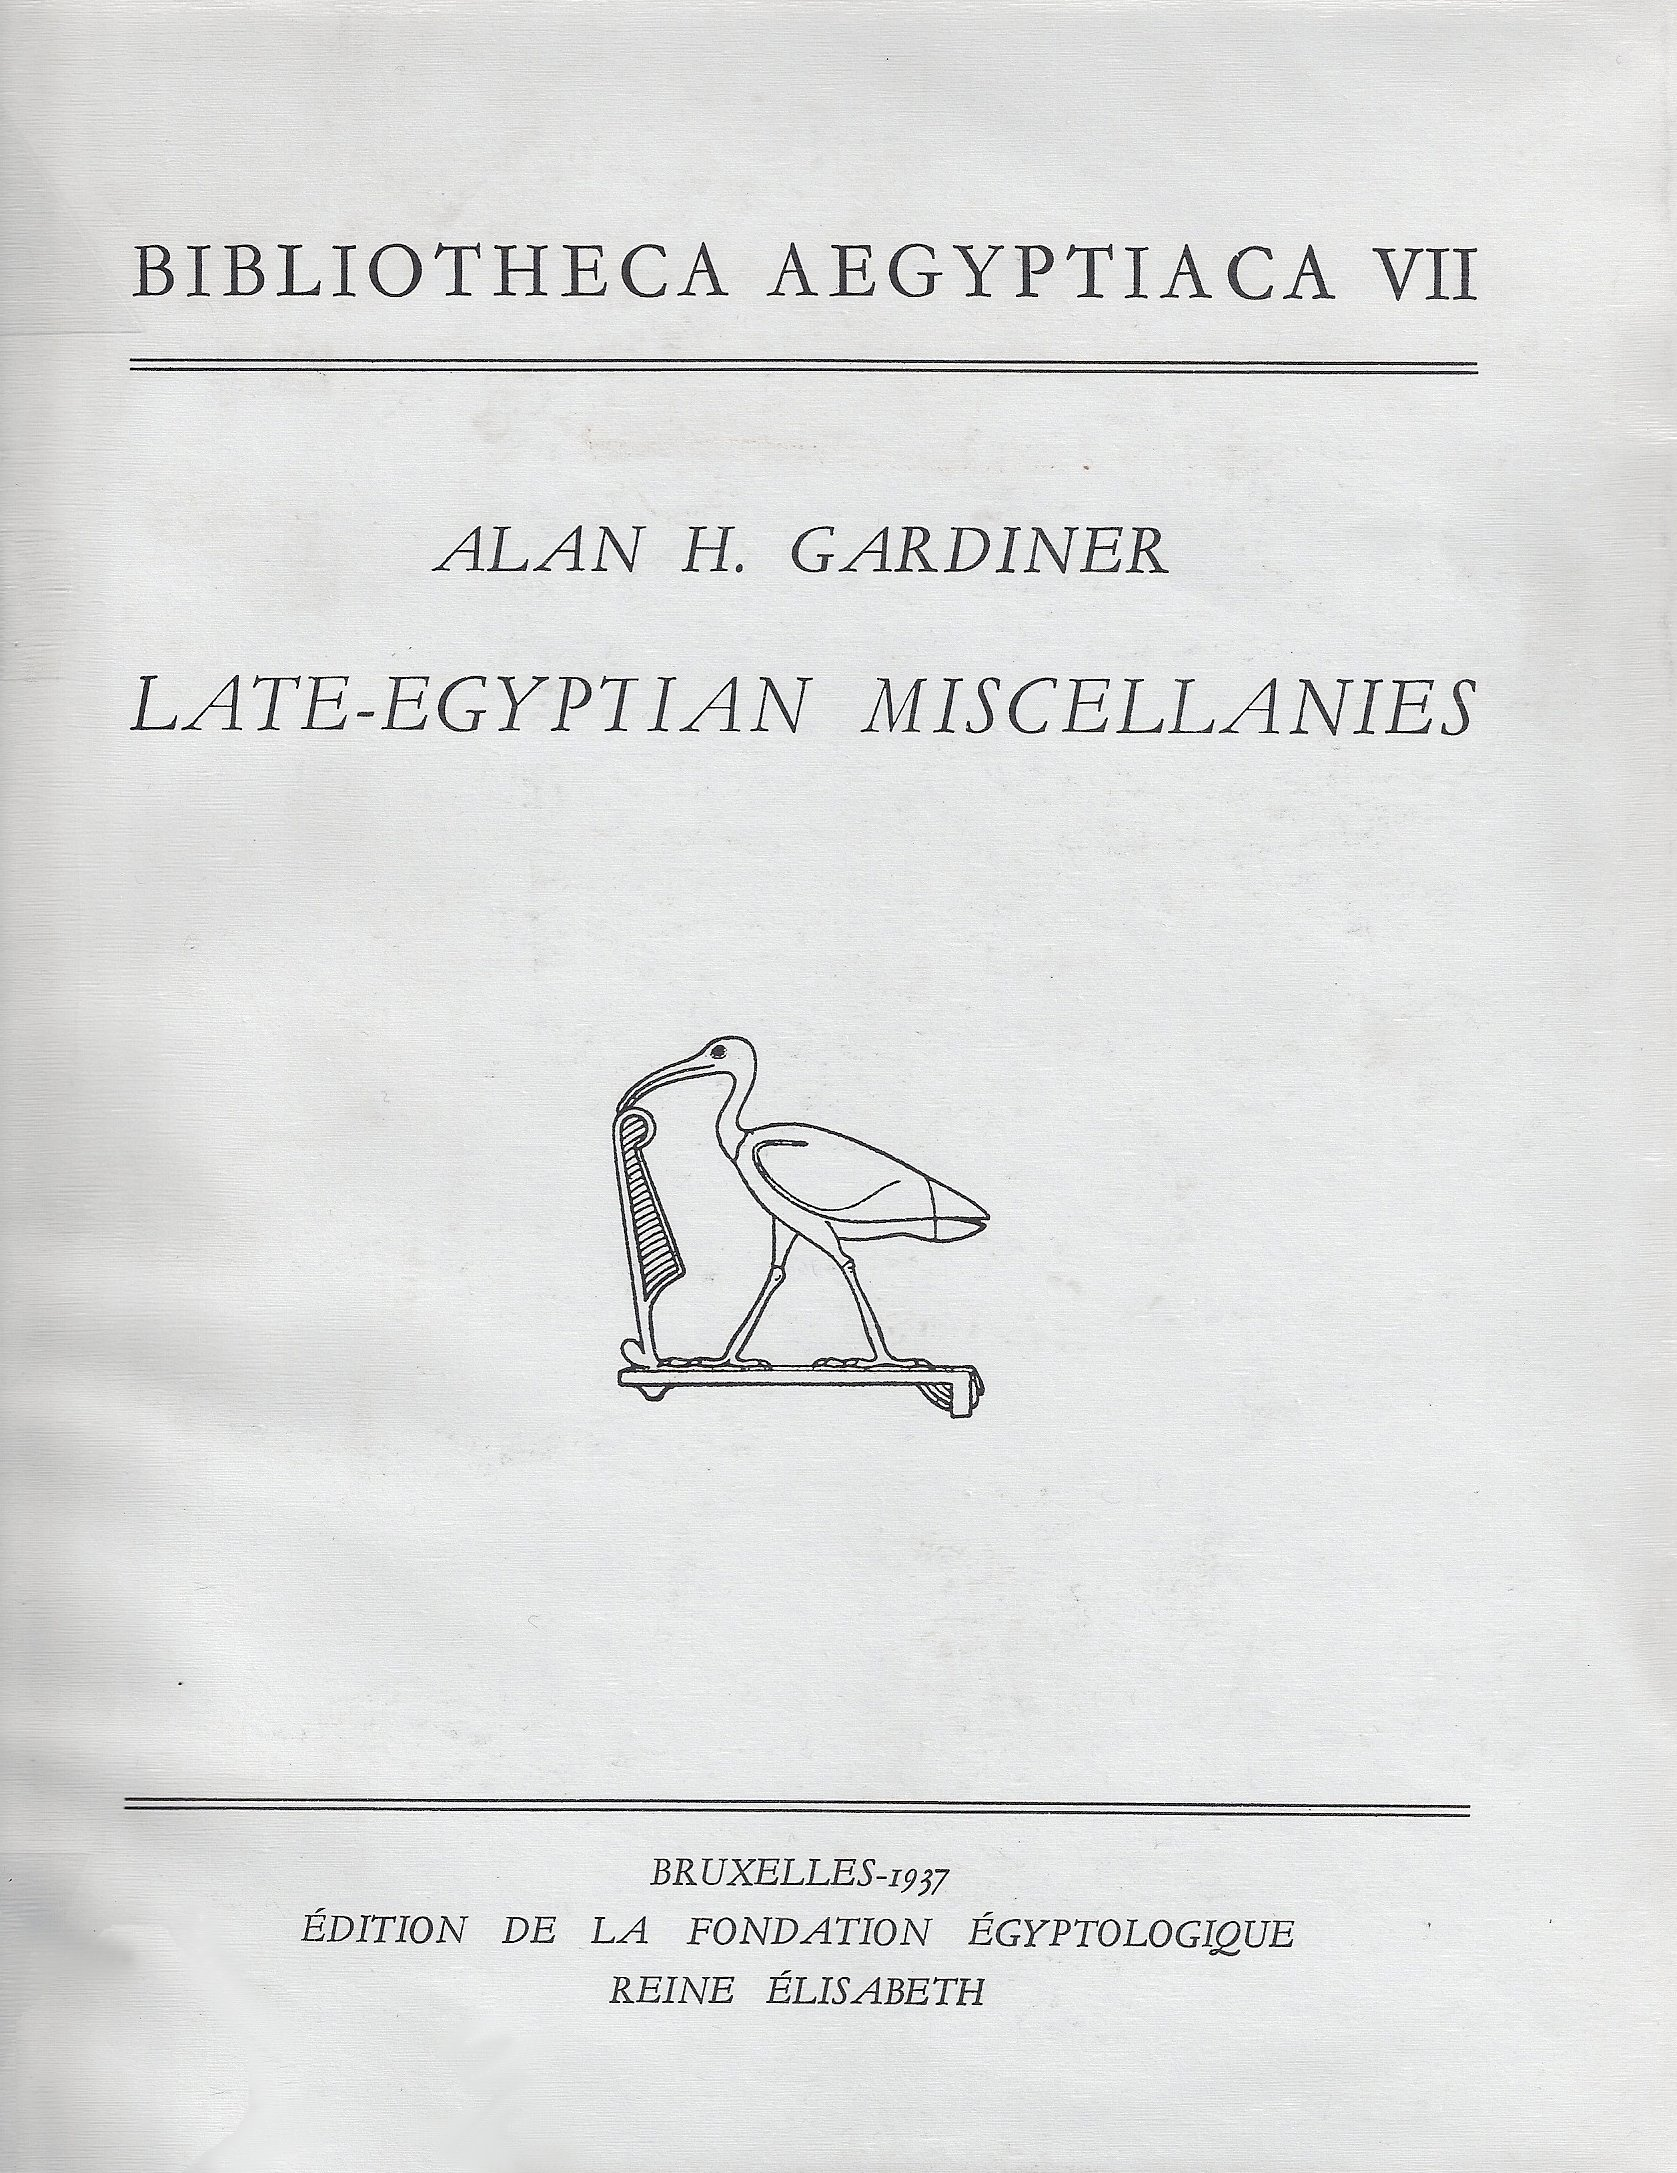 Late-Egyptian miscellanies